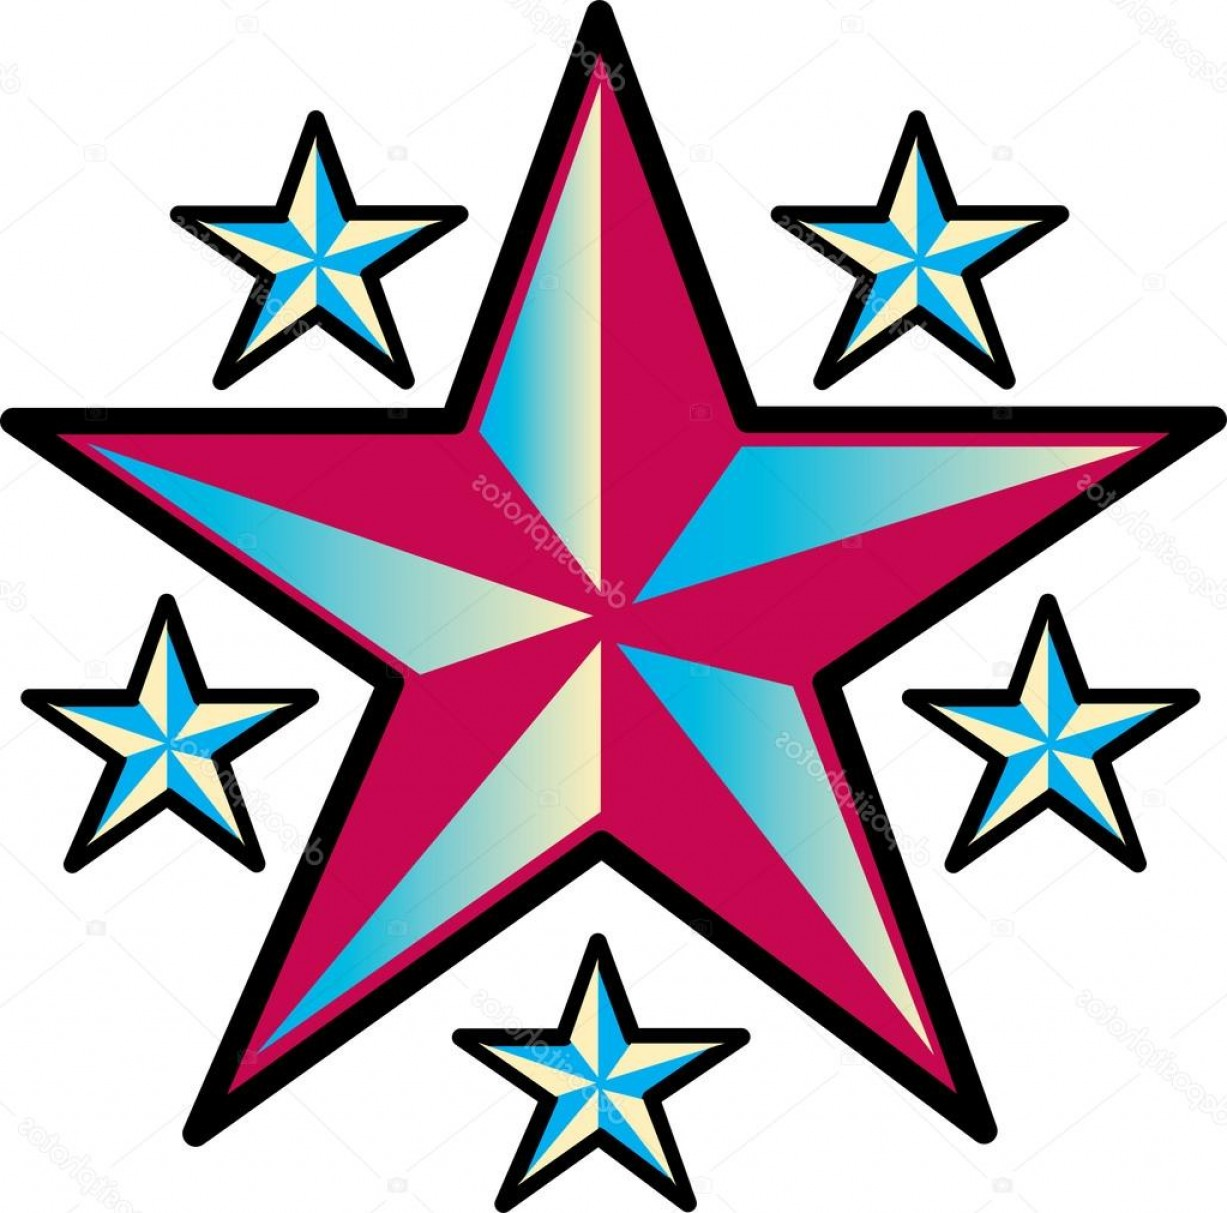 Nautical Star Vector Logo: Stock Illustration Large Nautical Star With Smaller